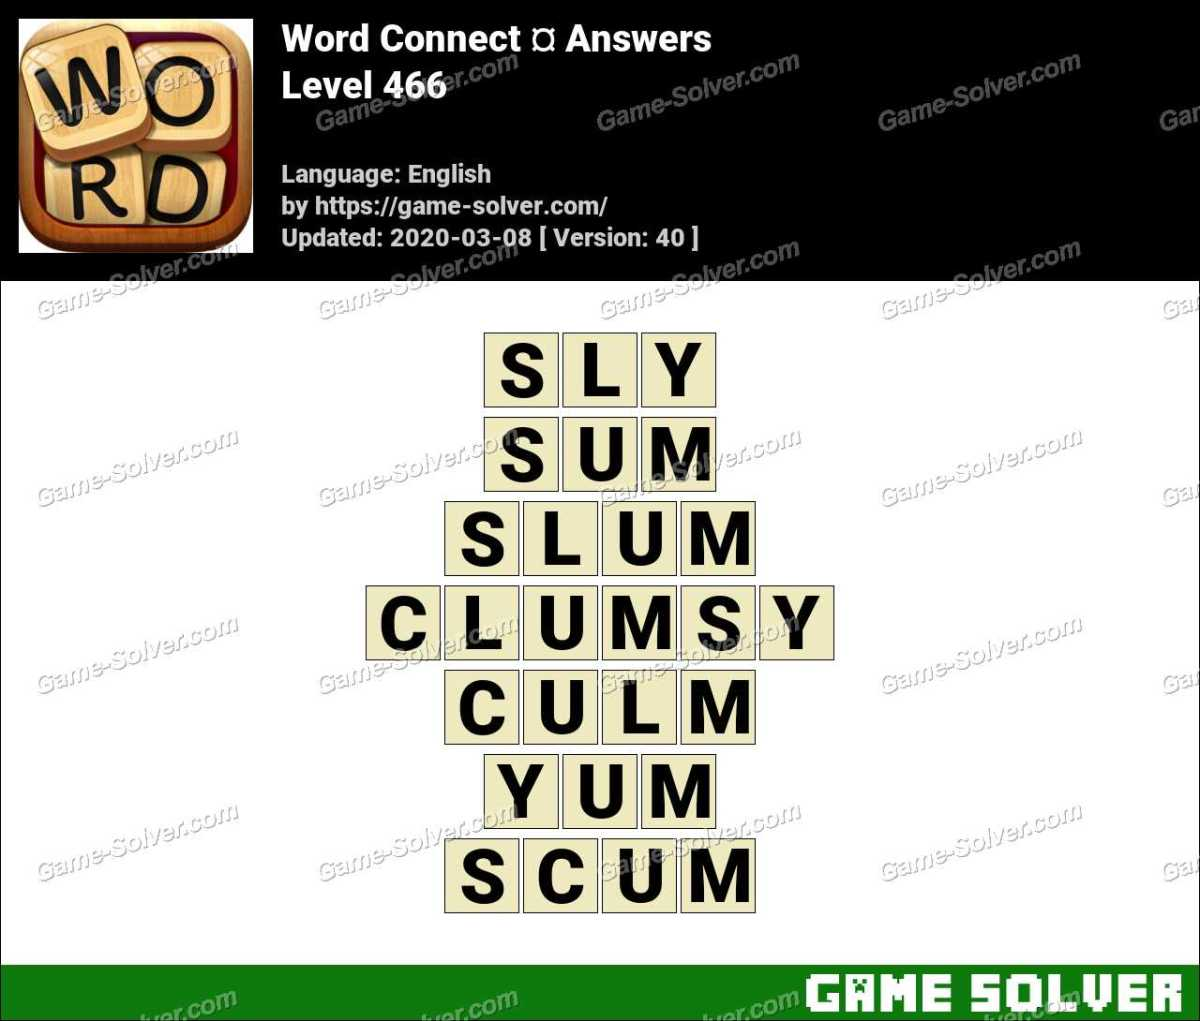 Word Connect Level 466 Answers